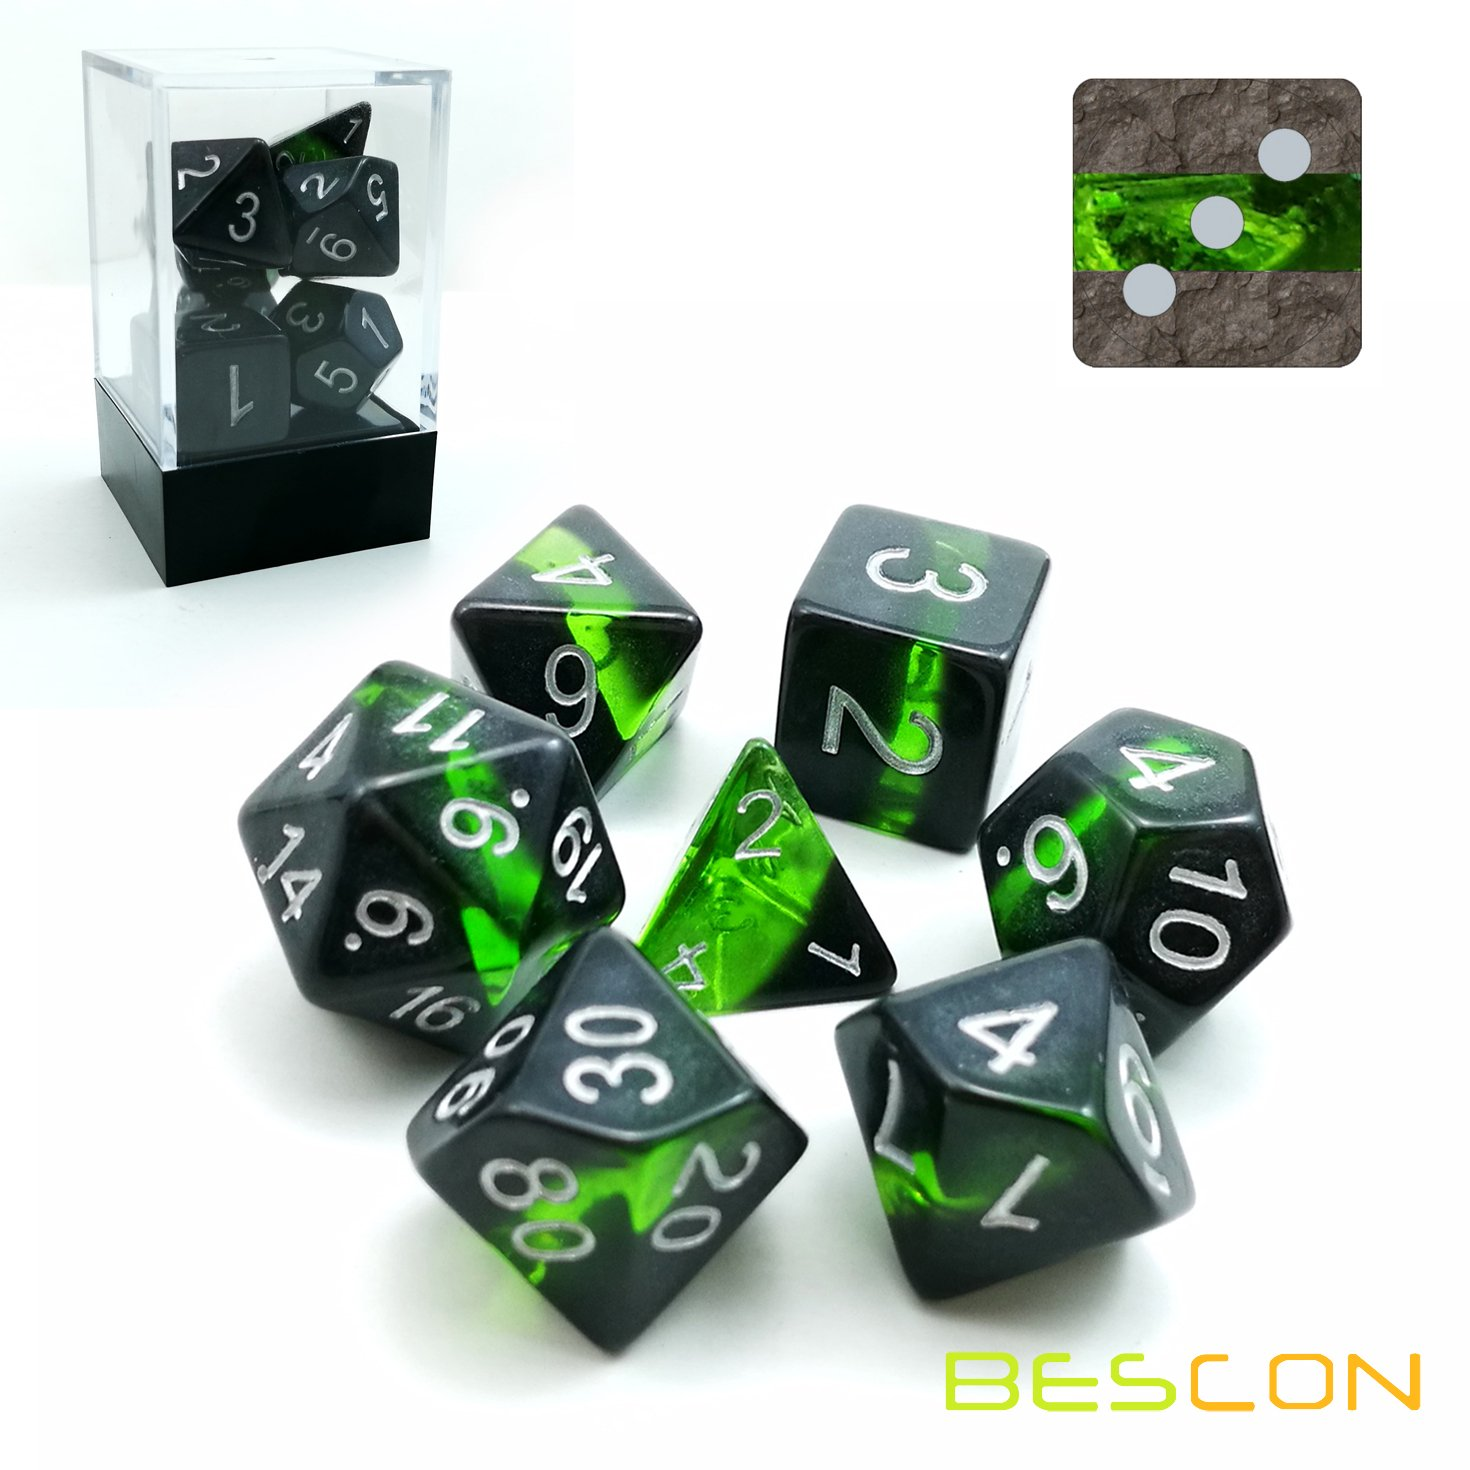 Bescon Mineral Rocks GEM VINES Polyhedral D&D Dice Set of 7, RPG Role Playing Game Dice 7pcs Set of EMERALD Bescon Dice BCD 17T02